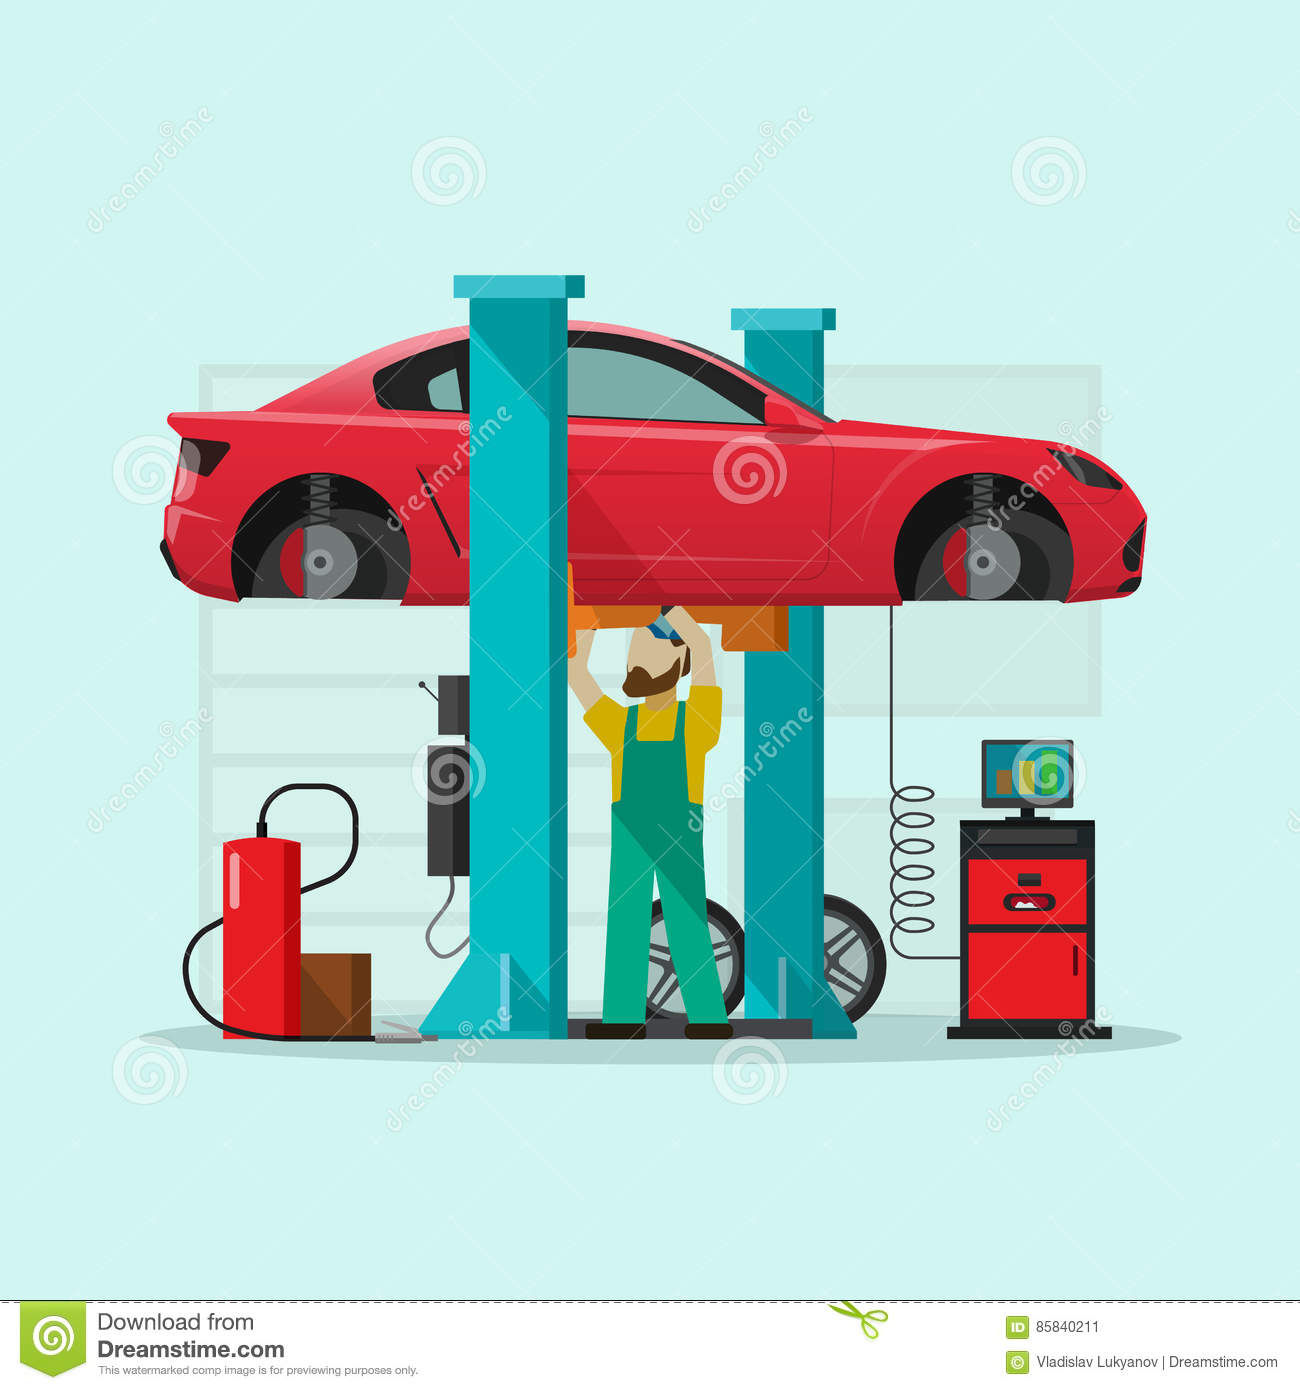 Garage automobile service a mechanic under bottom of car for Garage reparation auto